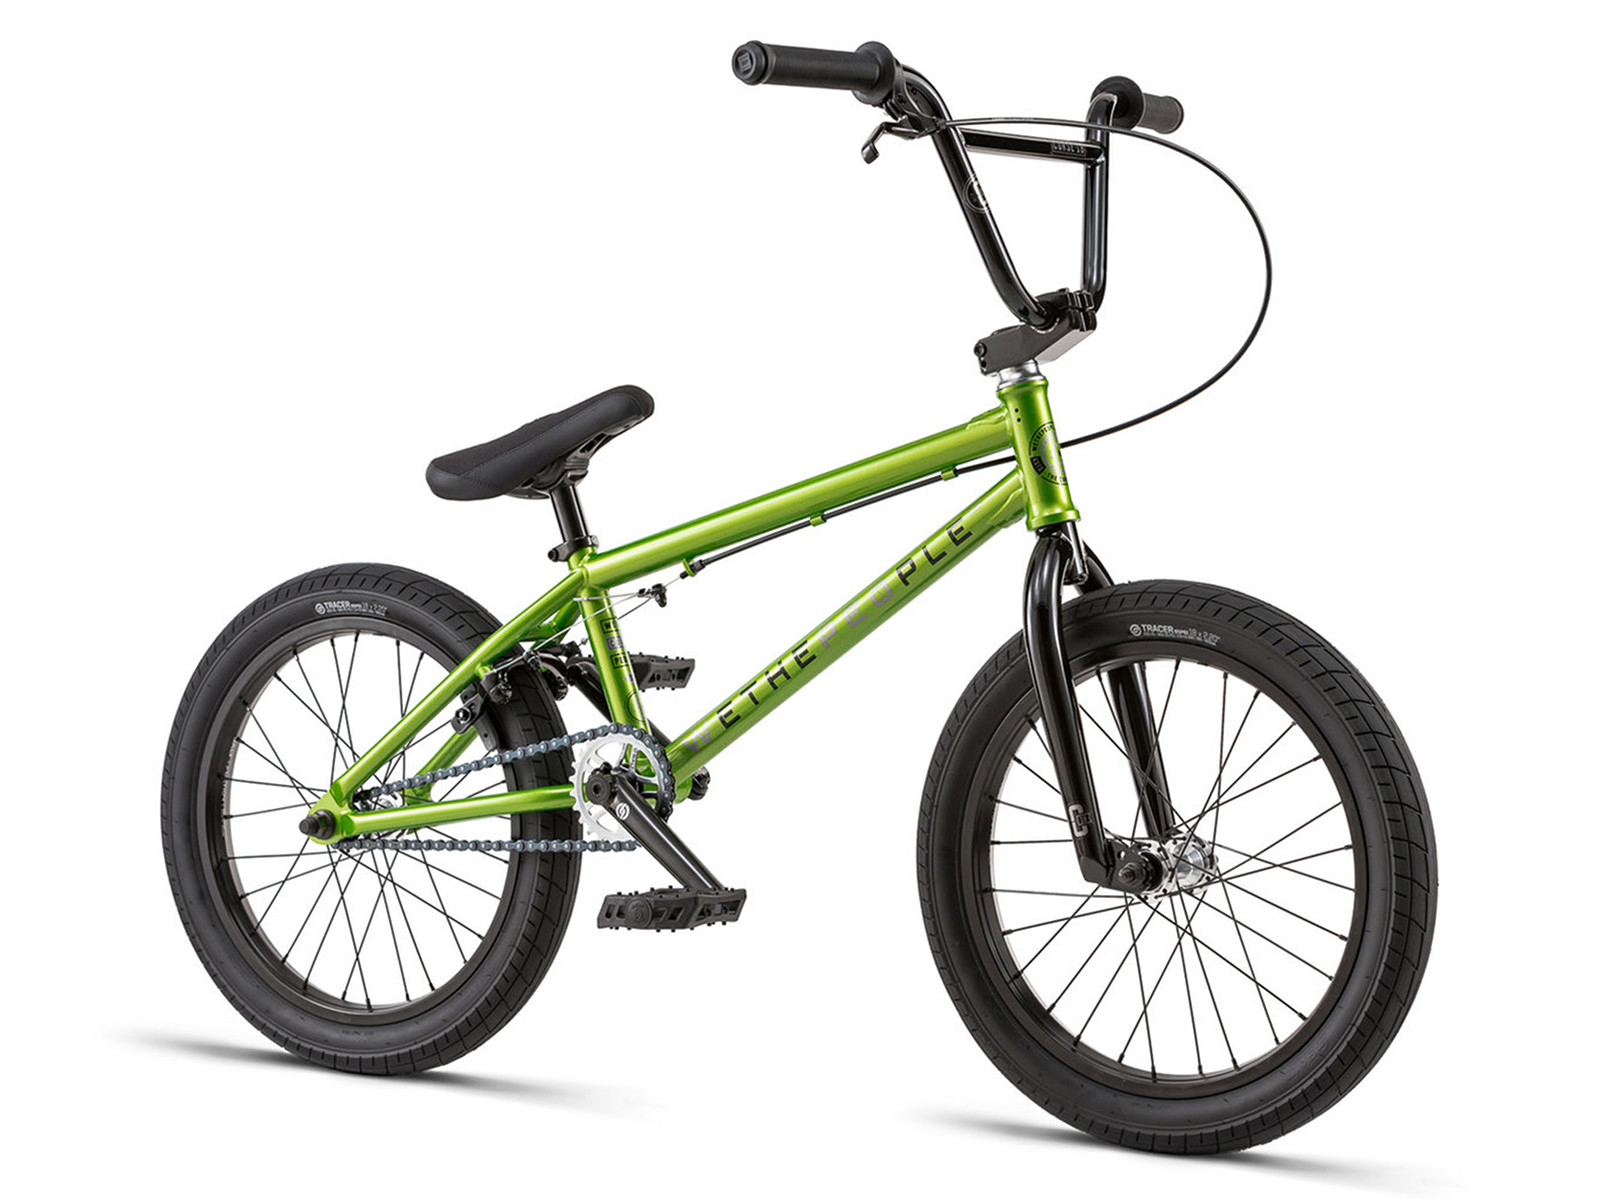 wethepeople curse 18 2018 bmx bike 18 inch mettalic. Black Bedroom Furniture Sets. Home Design Ideas